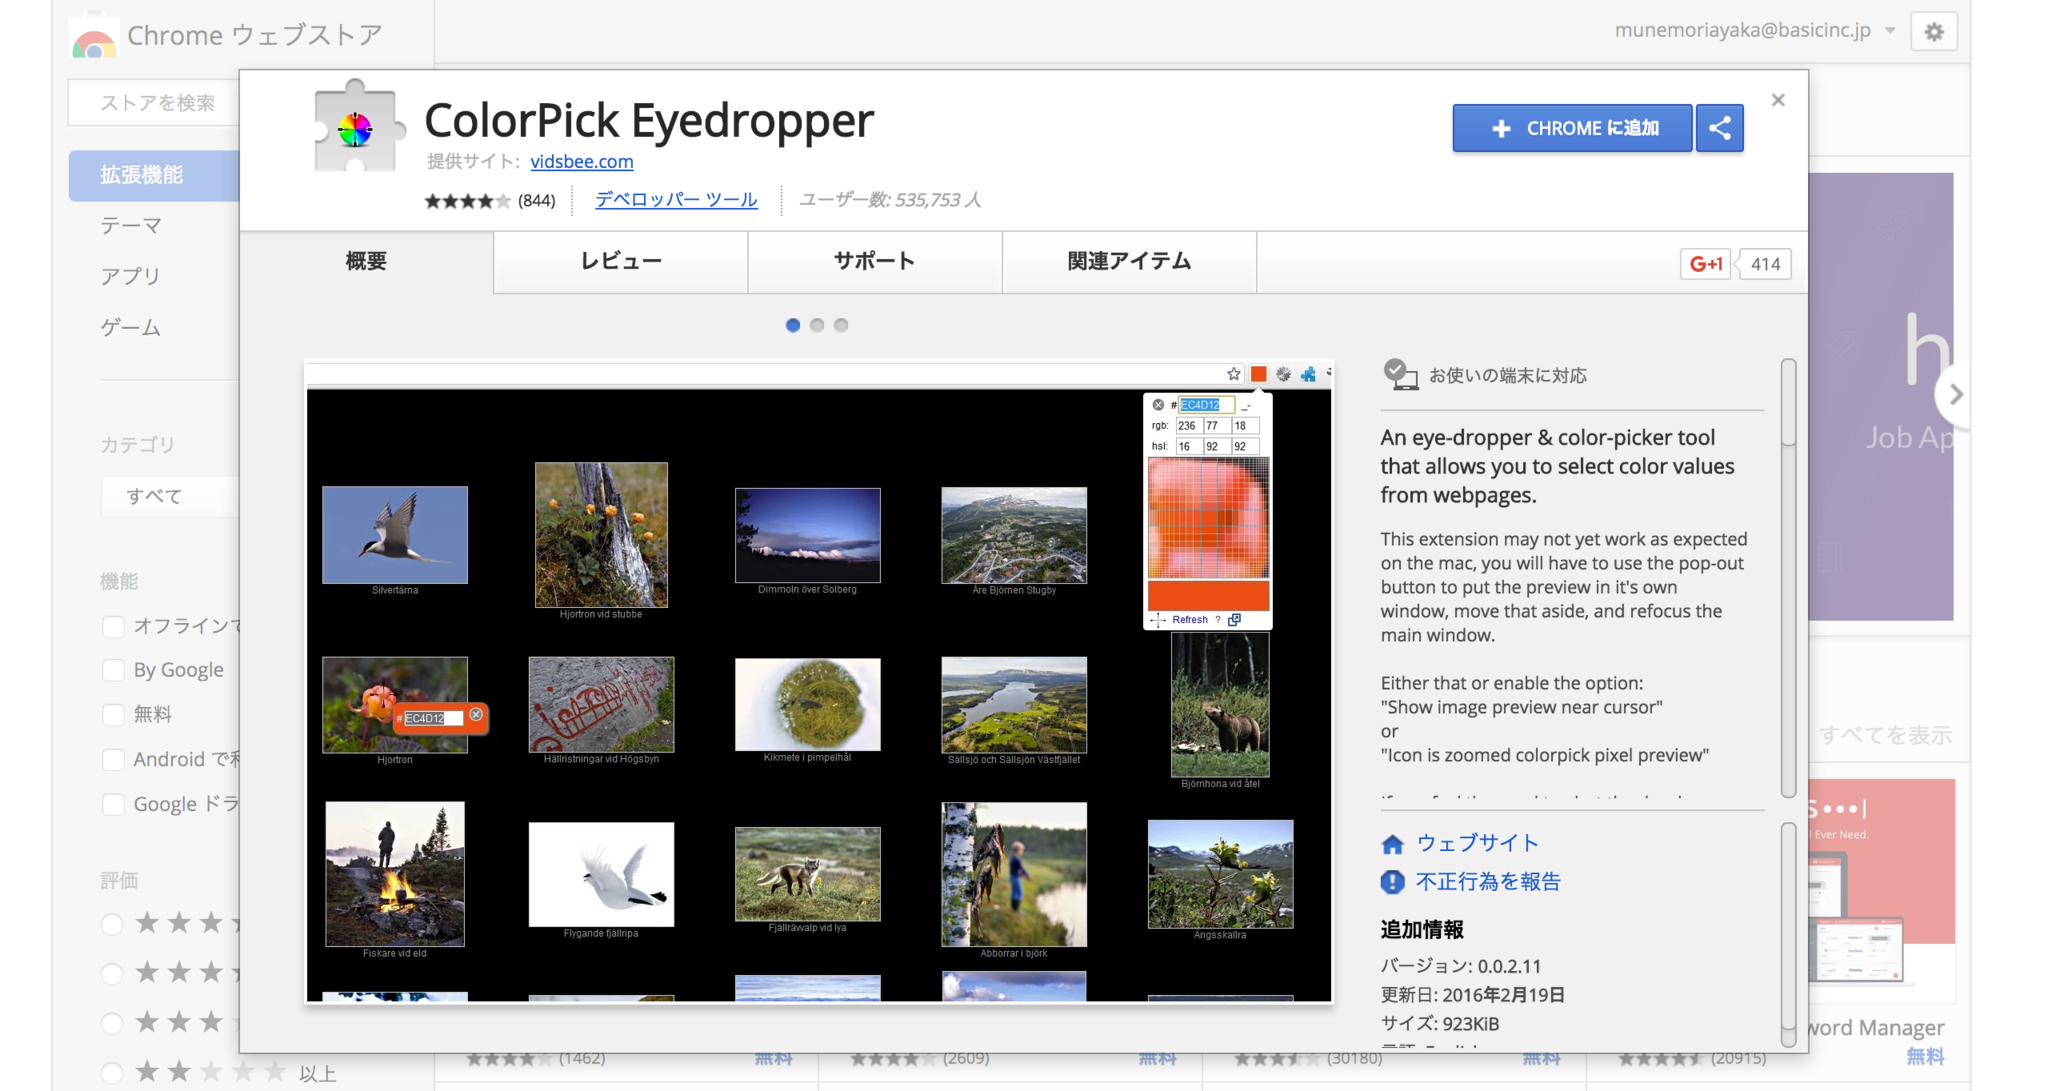 ColorPick_Eyedropper___Chrome_ウェブストア.png